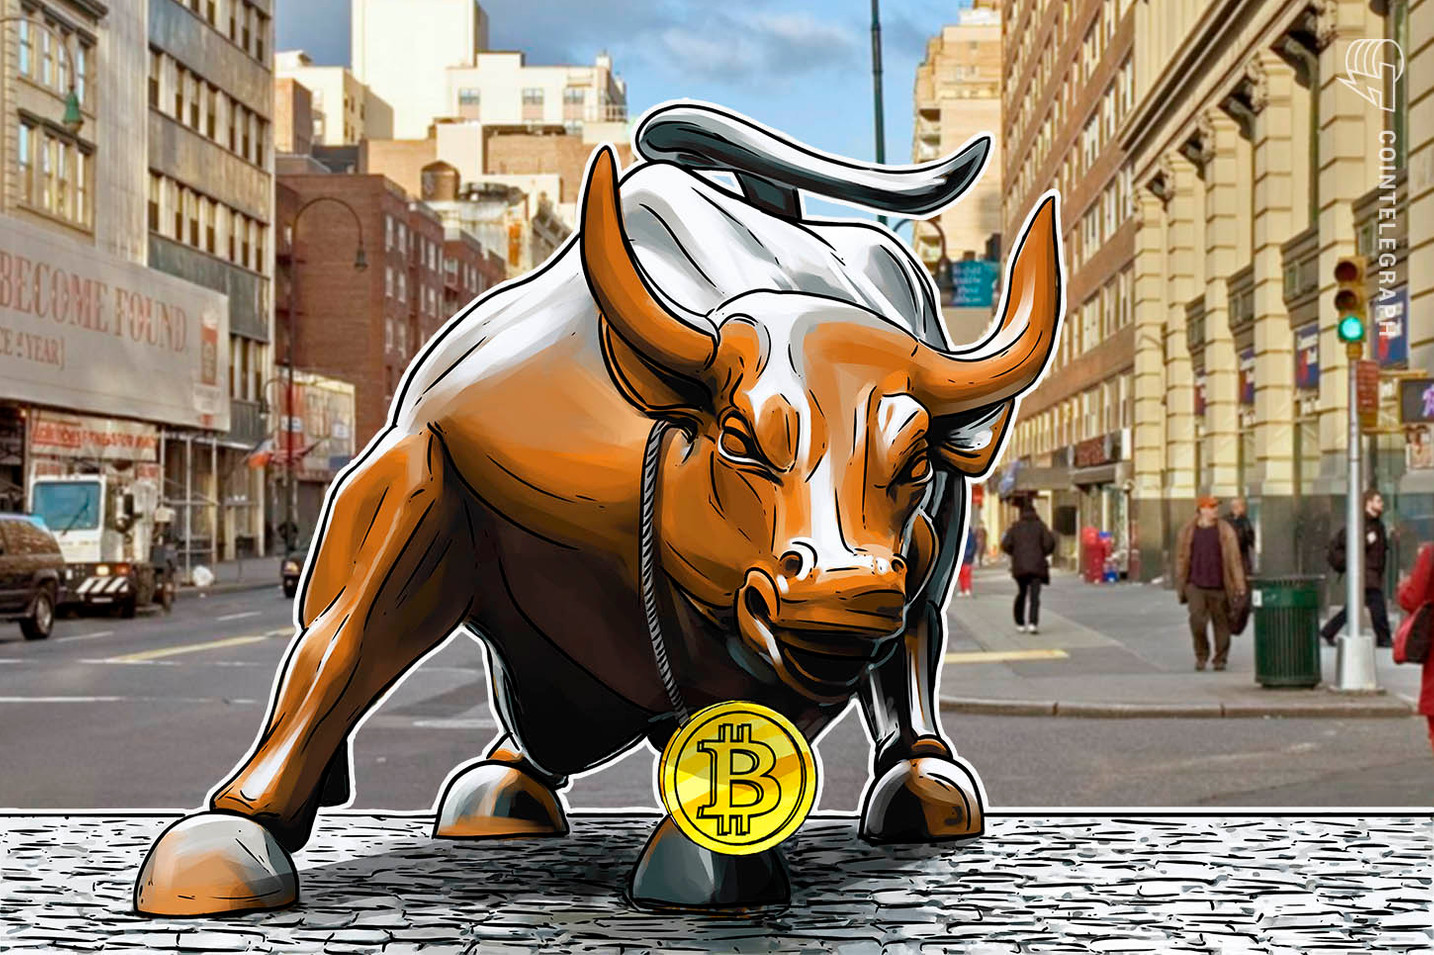 NYSE's Plans For 'Physical Delivery' Of Bitcoin Pave Way For Major Crypto Adoption, Analysts Say